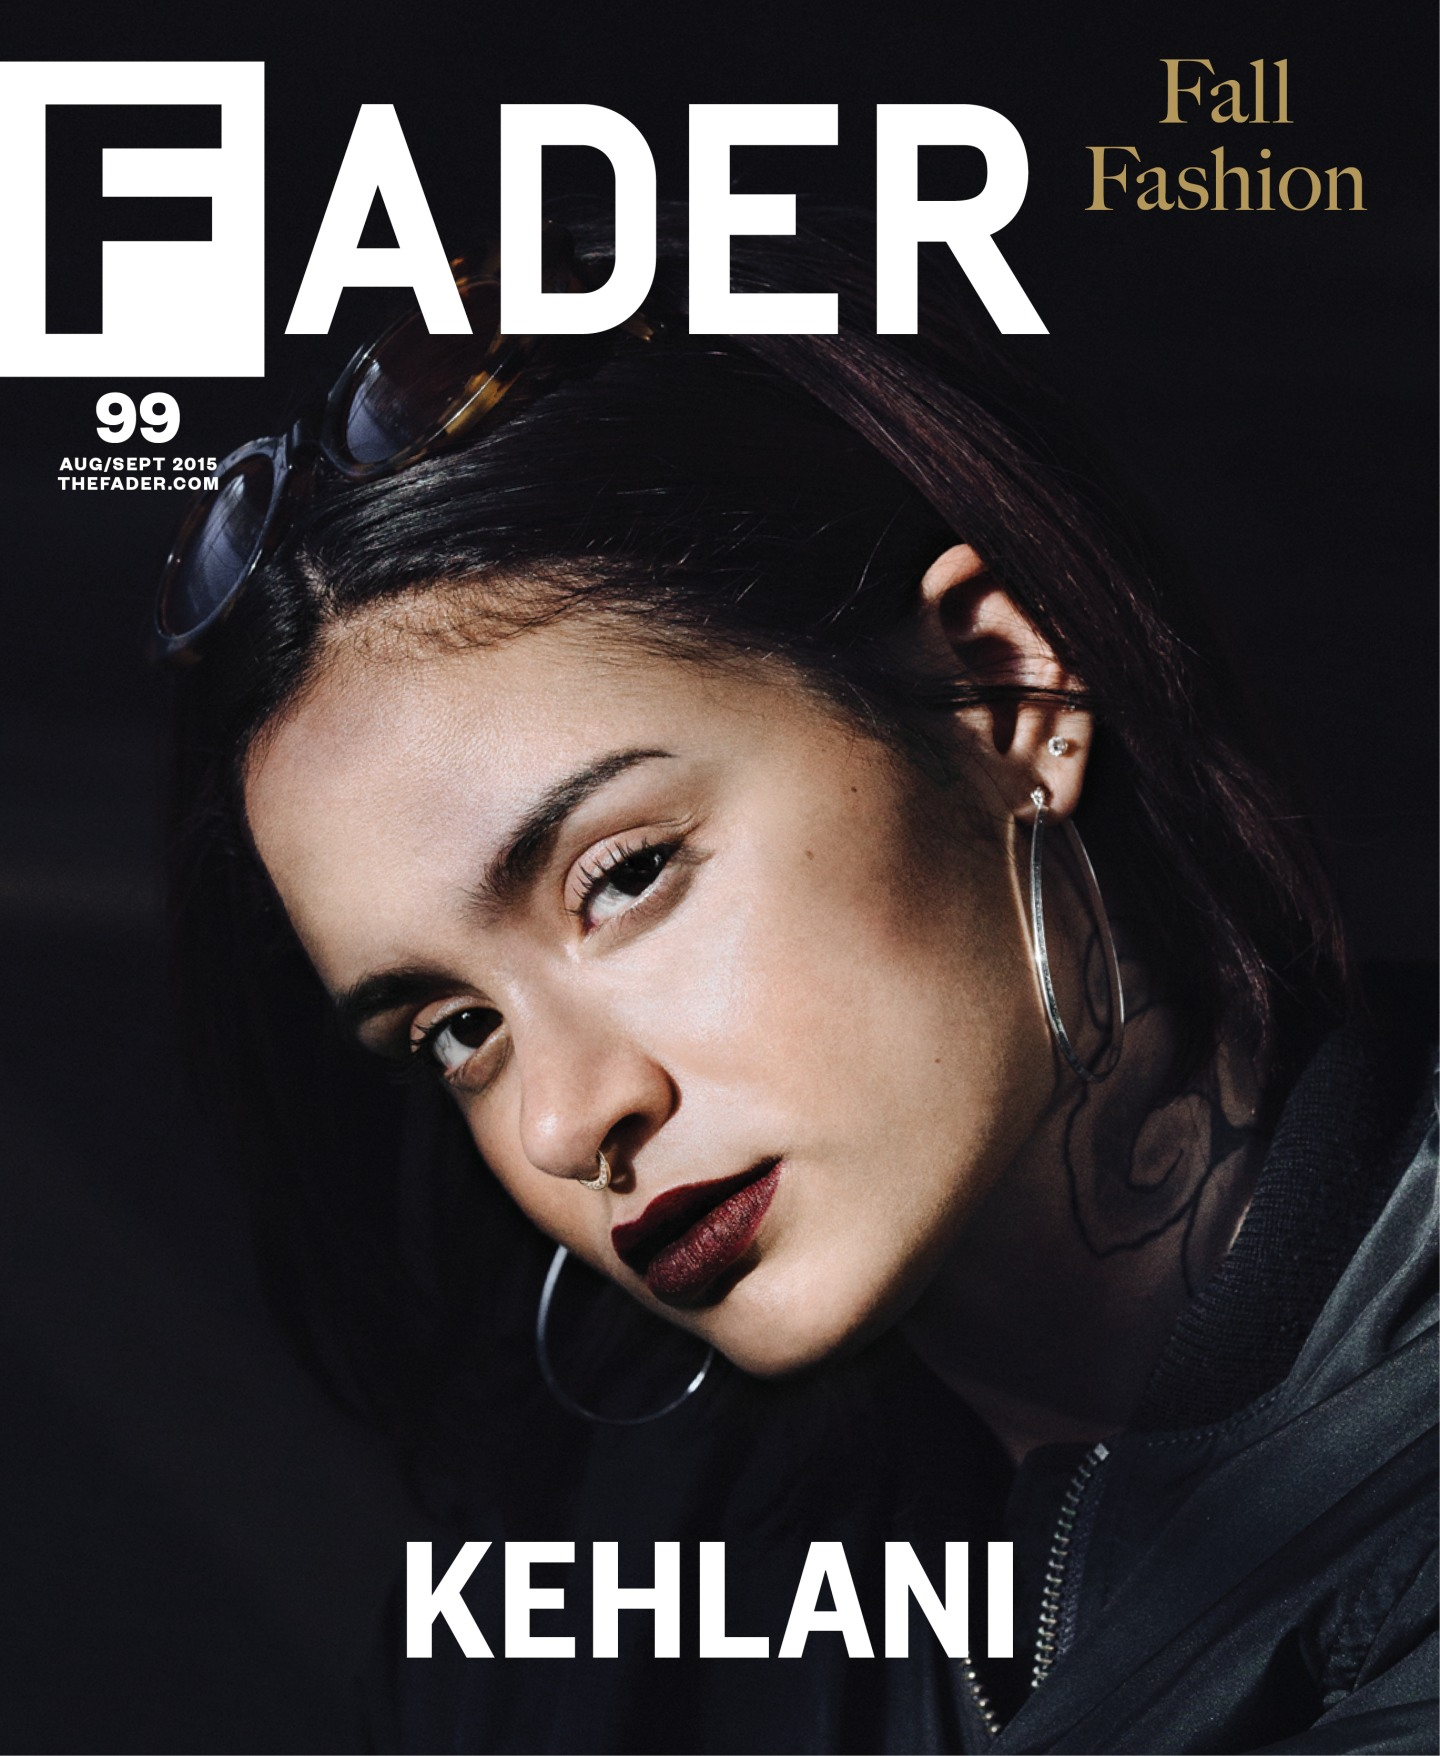 Starter Kitchen Cabinets Kehlani Earned This The Fader